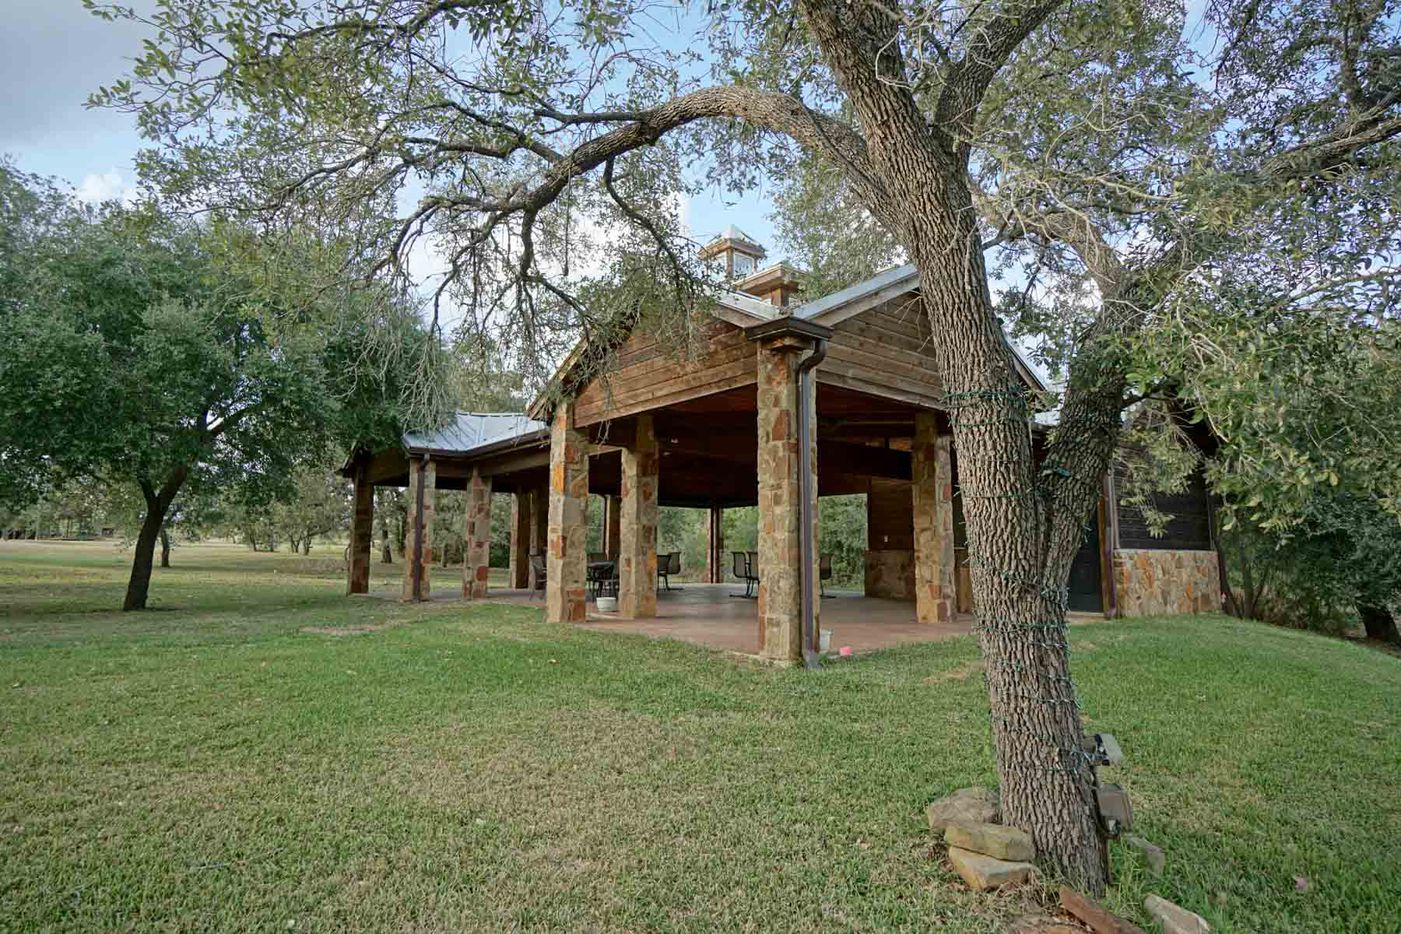 The property has outdoor event spaces.